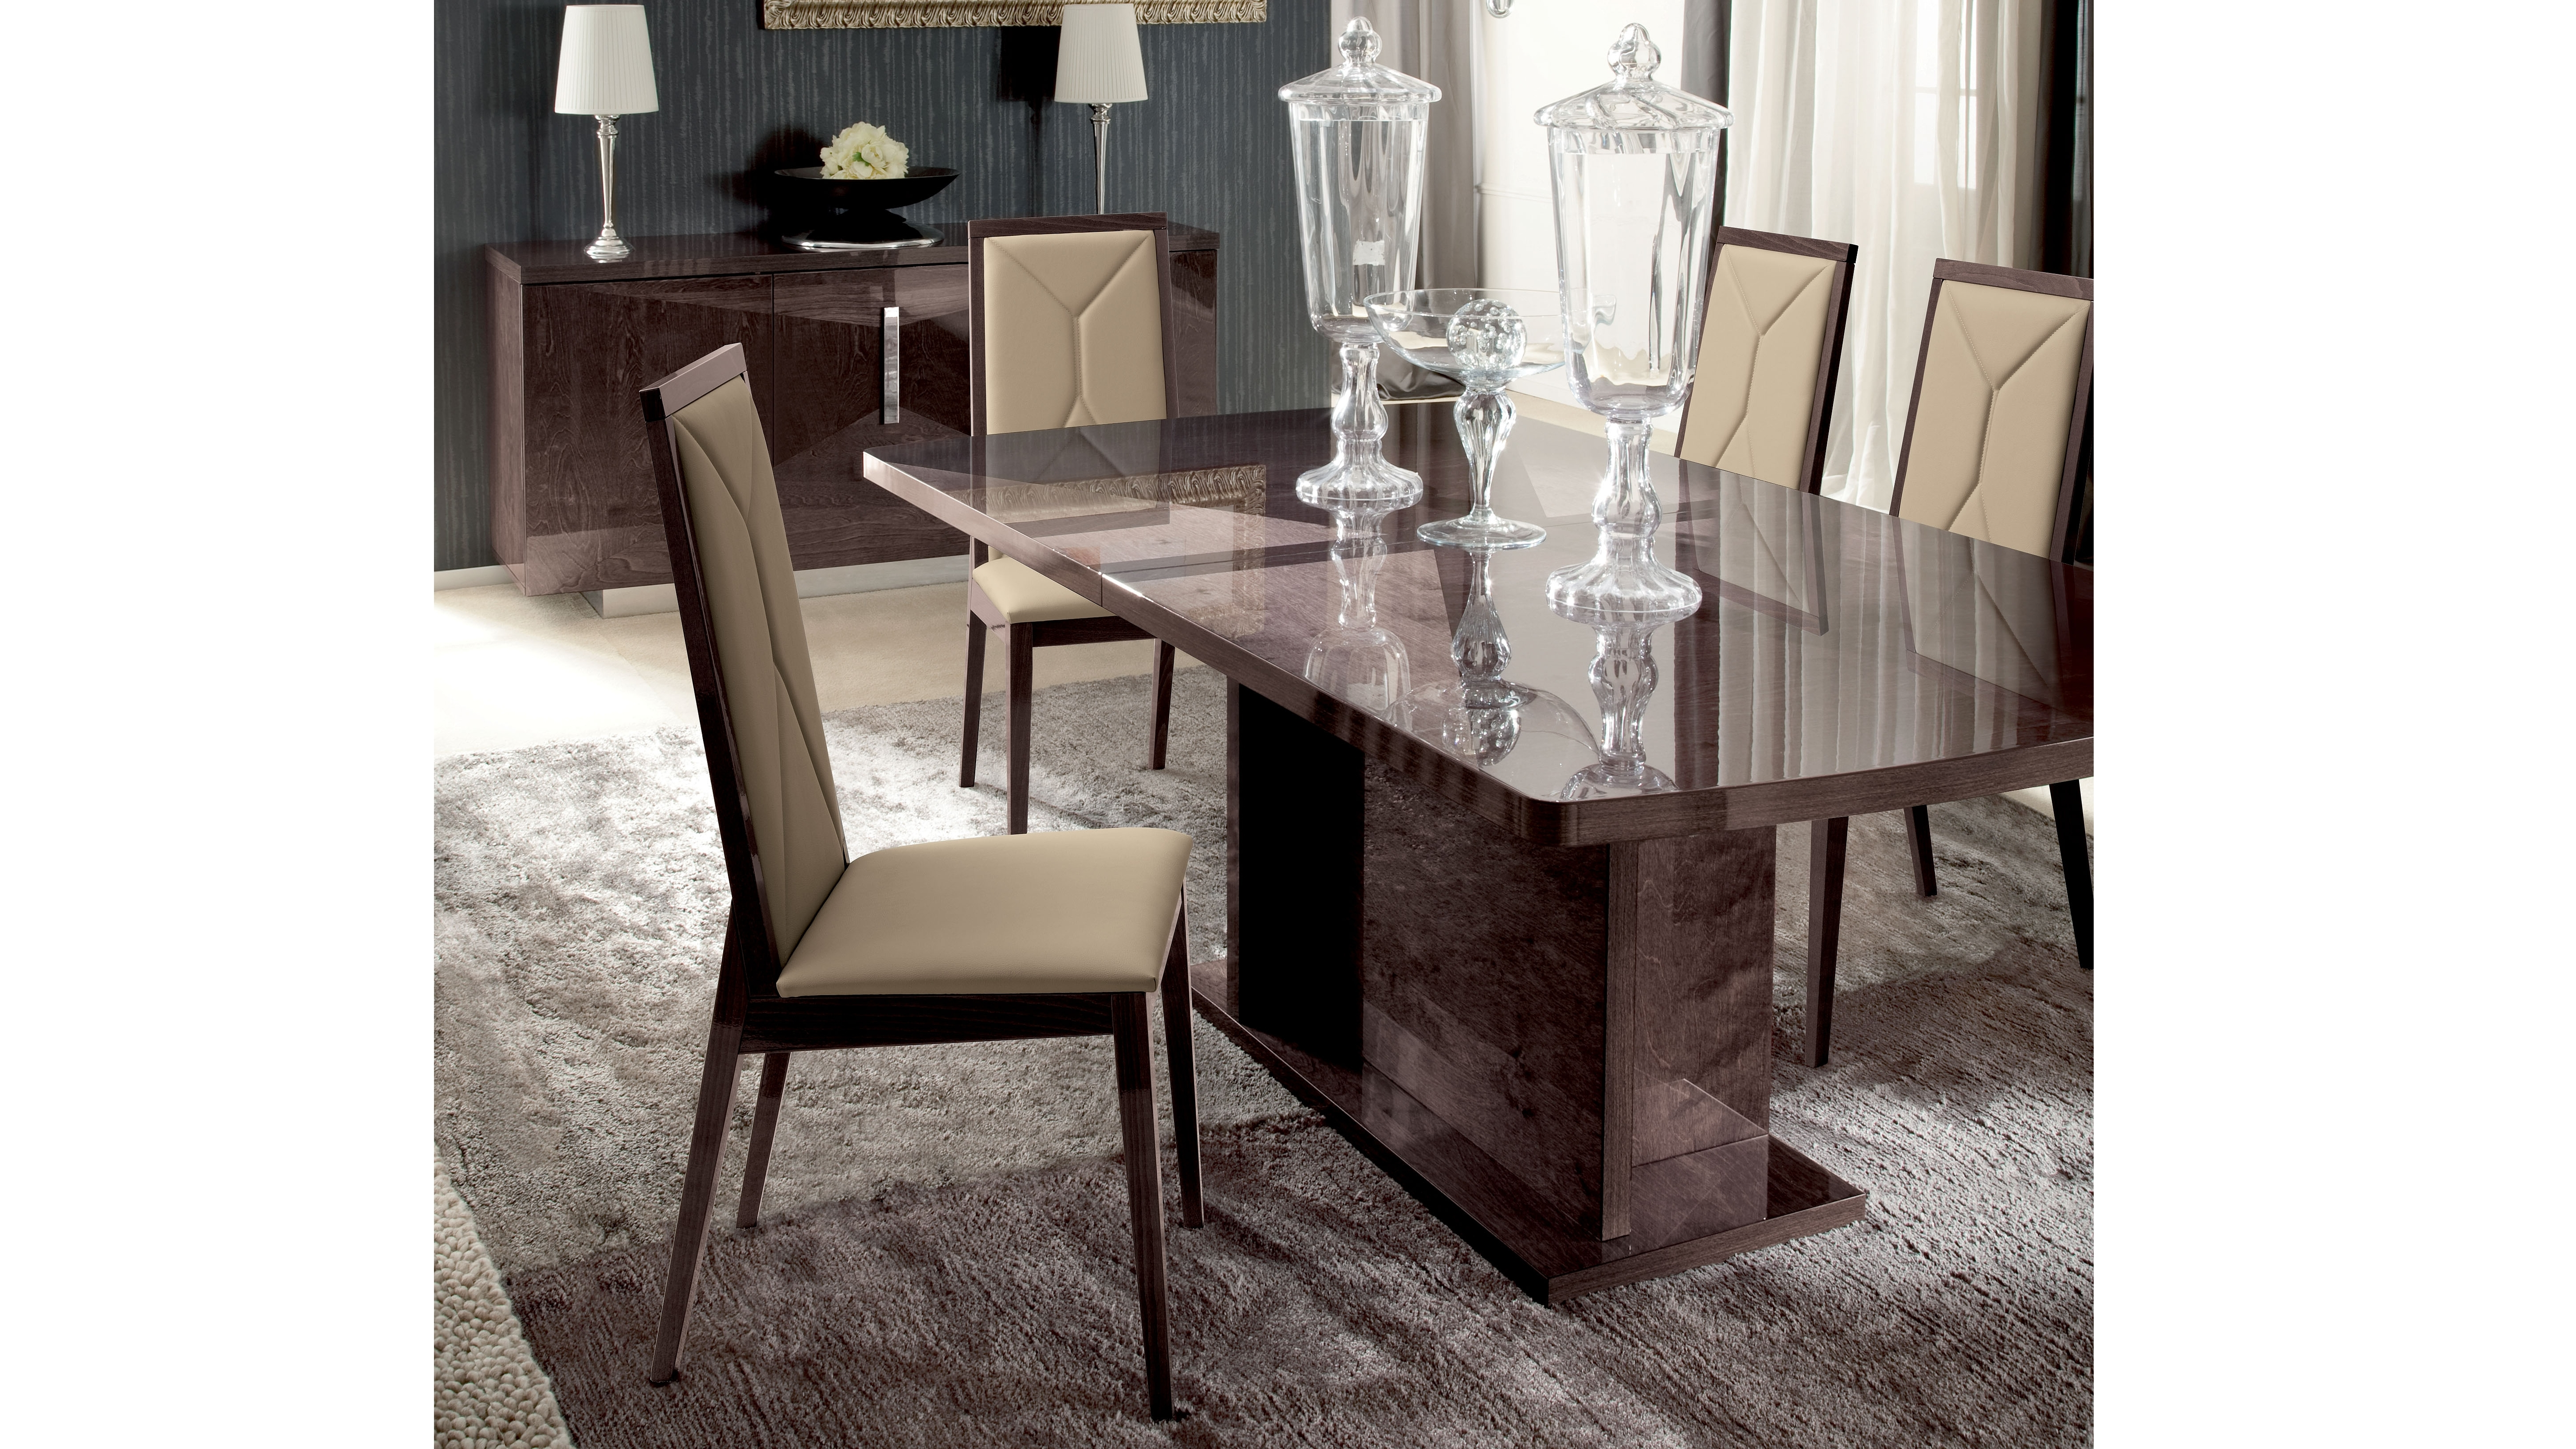 Alf eva dining table 160cm harvey norman singapore for Dining room tables harvey norman